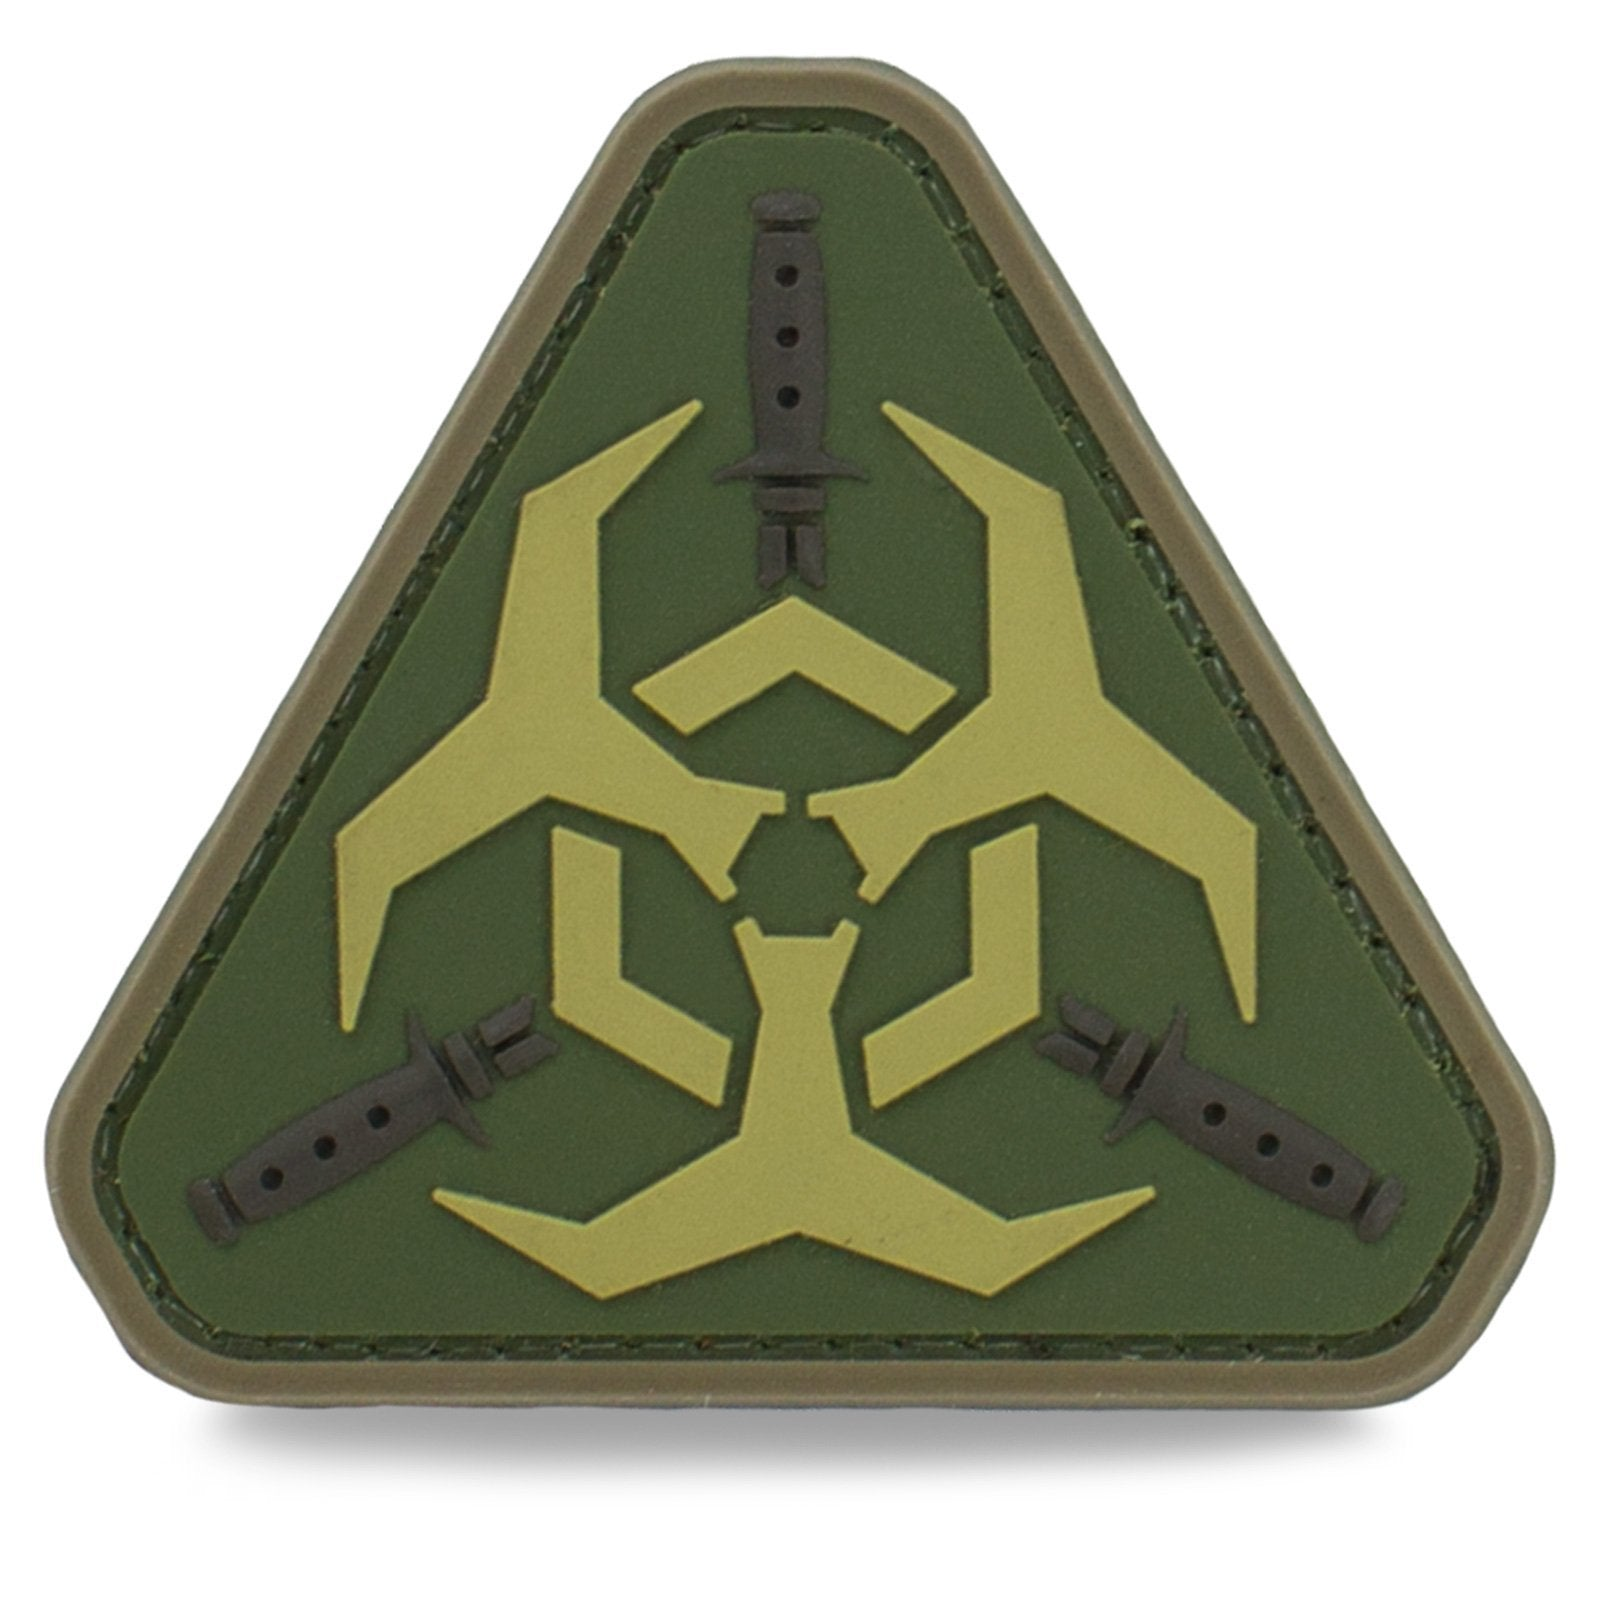 3D PVC Zombie Bio Warfare Patch | UKMCPro